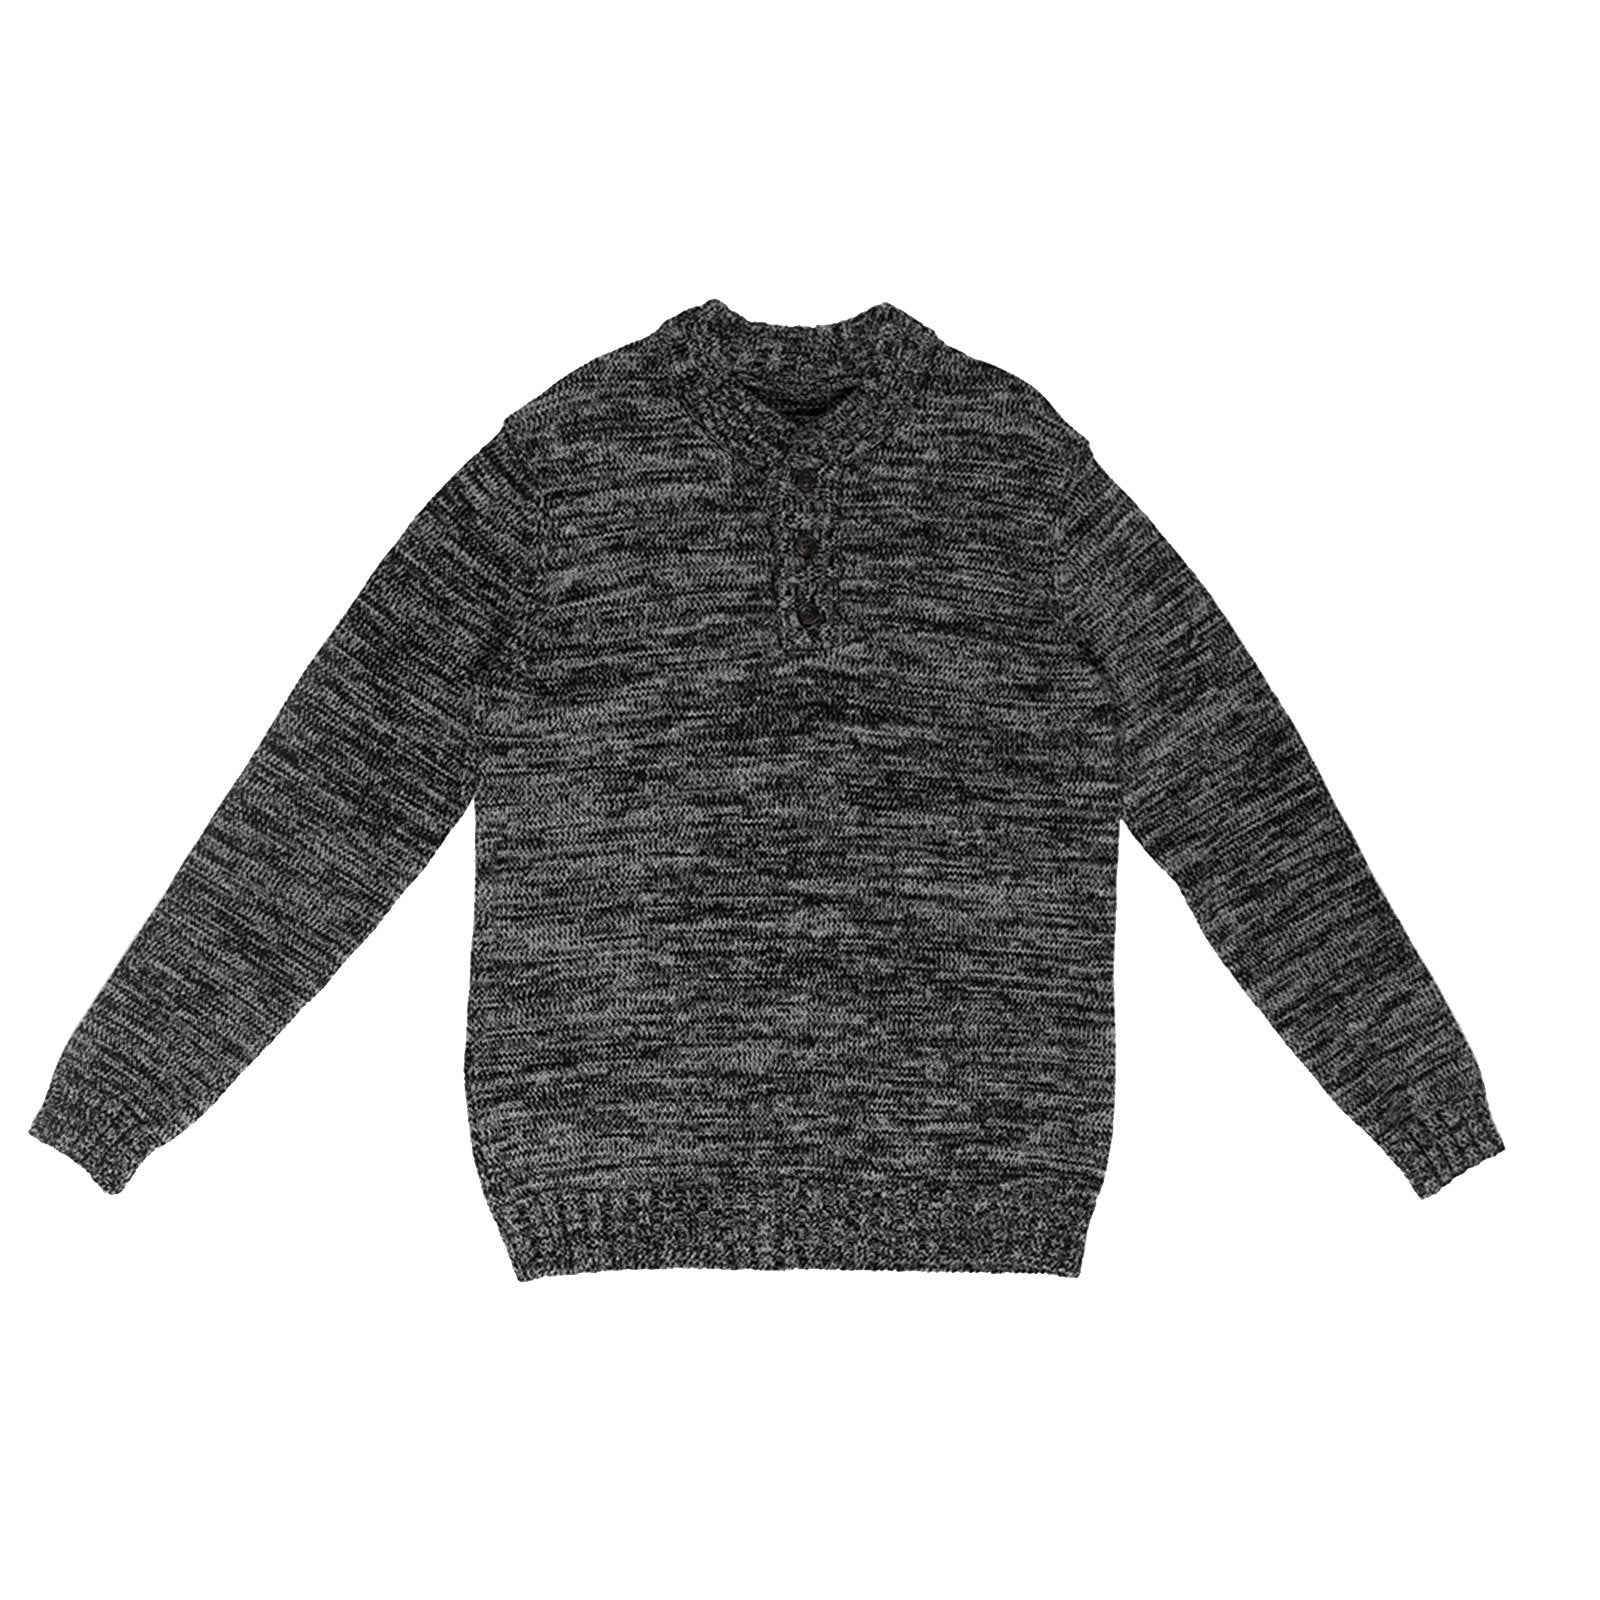 PULLOVER HENLEY SWEATER BLACK / GREY